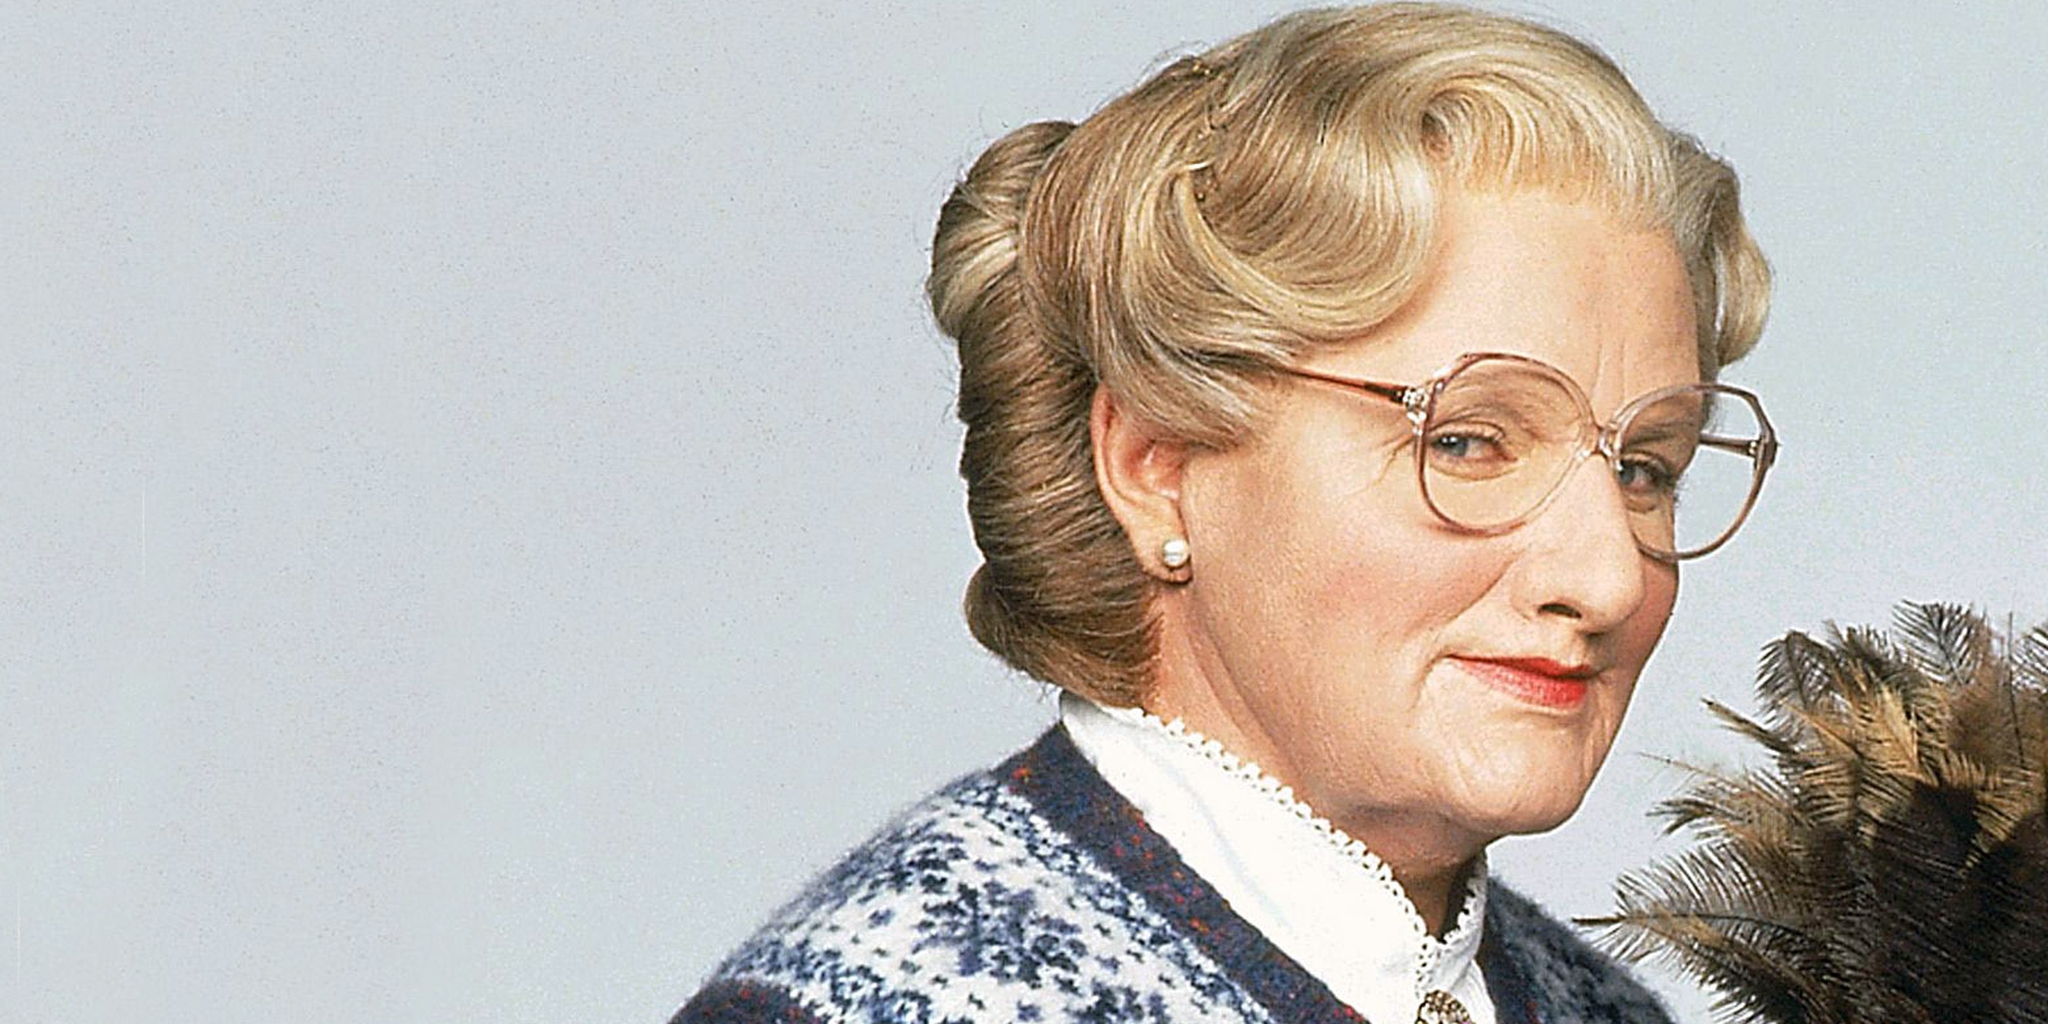 HQ Mrs. Doubtfire Wallpapers | File 1040.7Kb